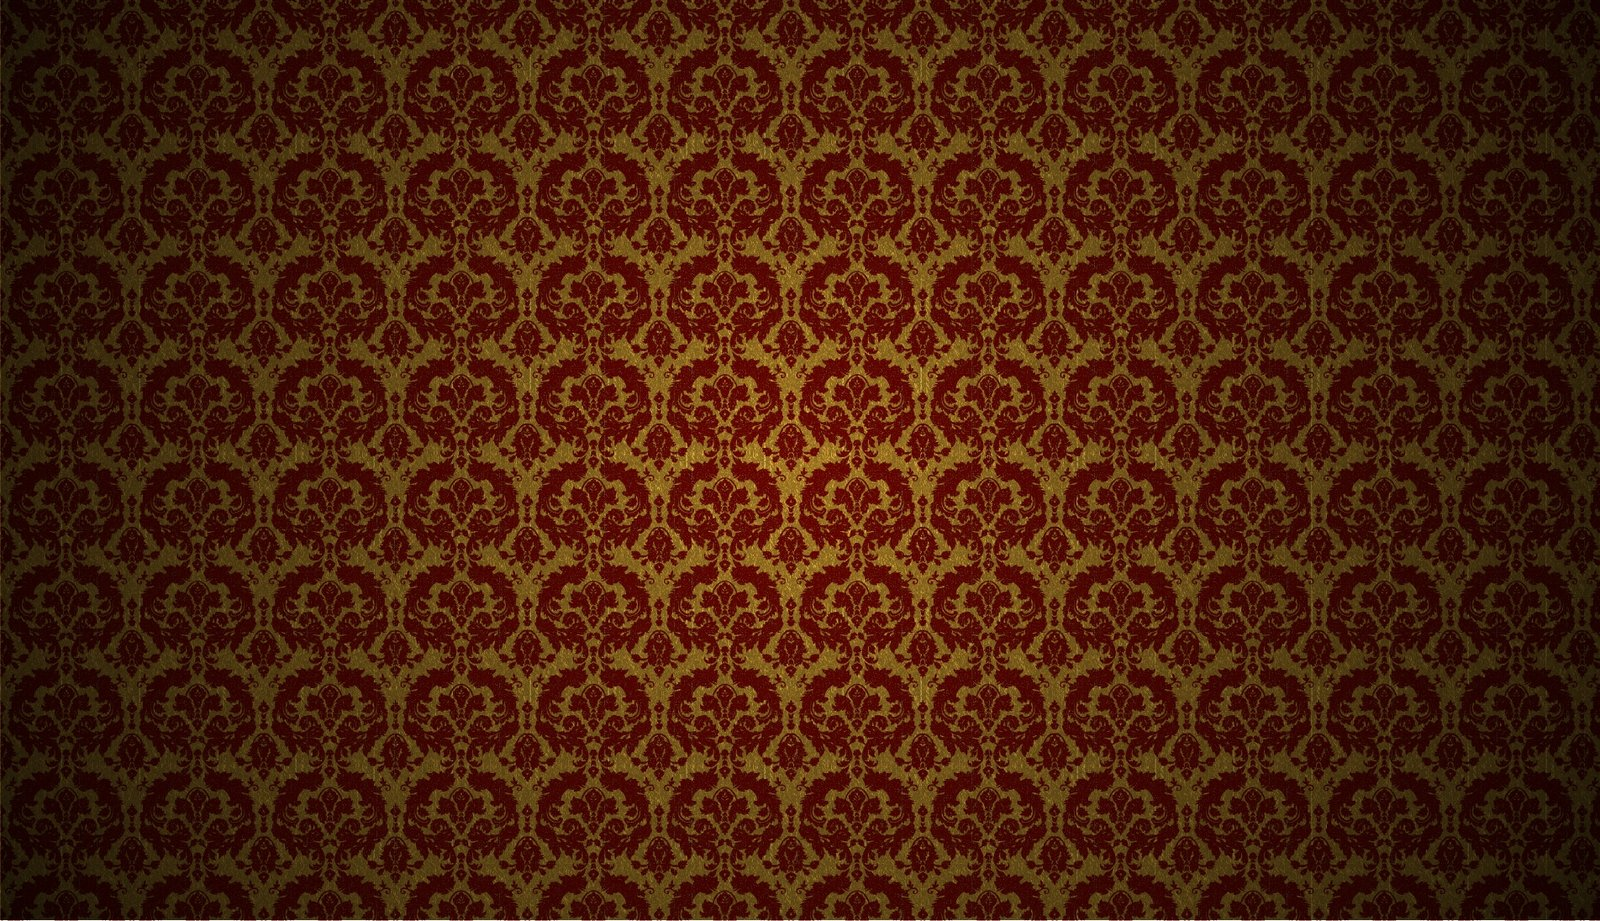 burgundy and gold holiday wallpaper - photo #16